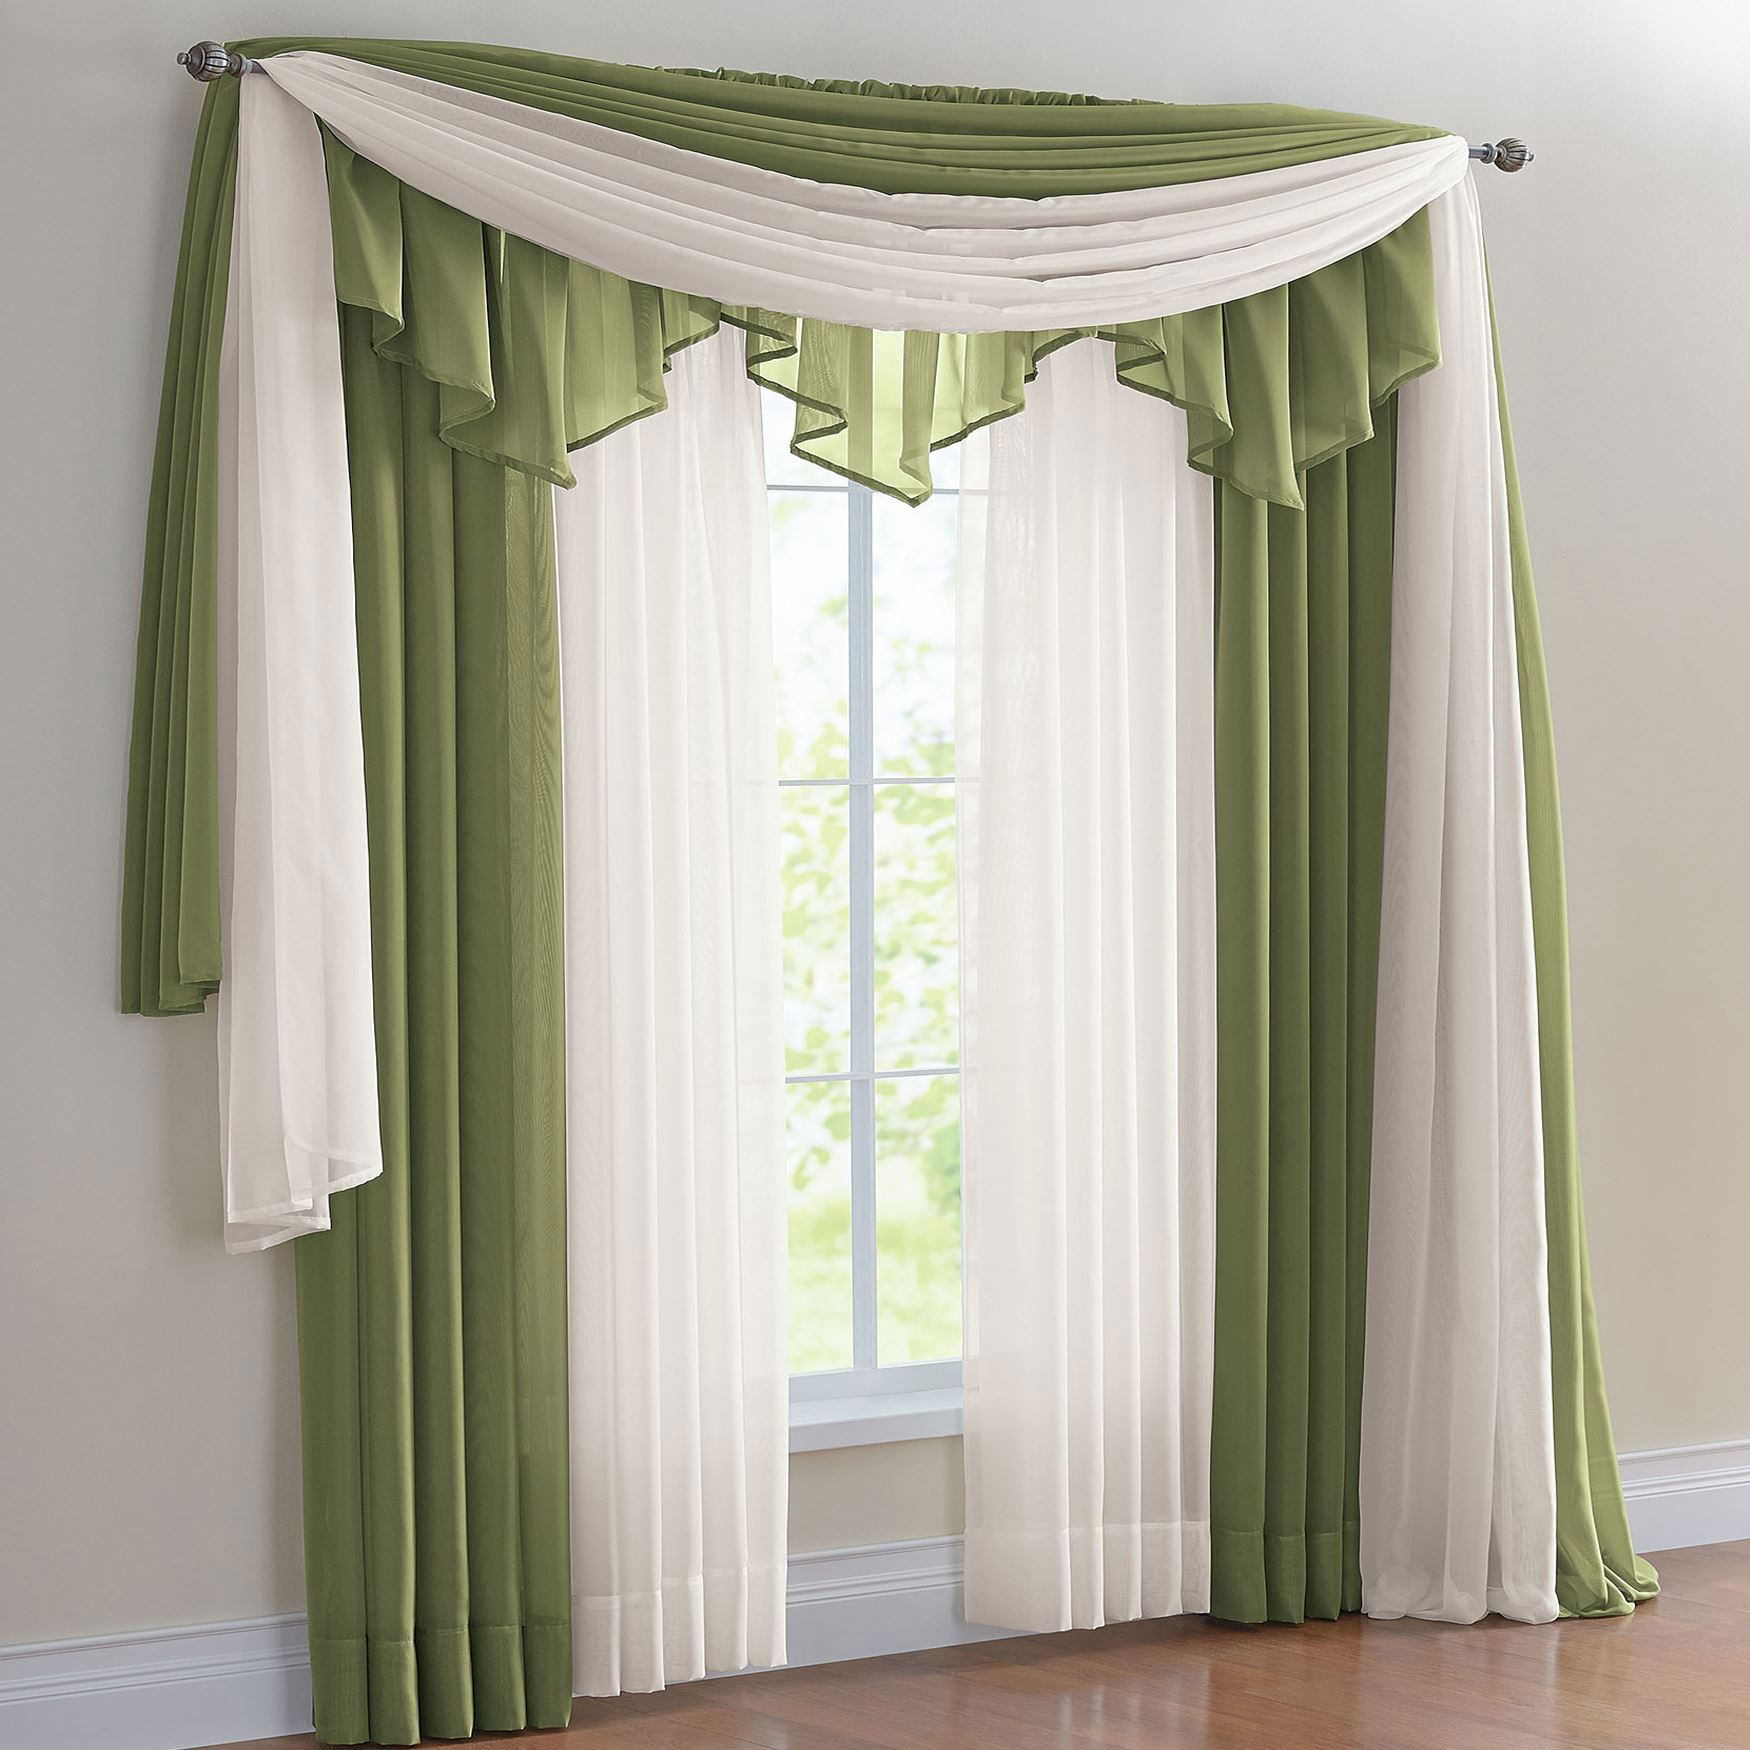 prodigious Voile Valance Part - 8: BH STUDIO® Sheer Voile Rod Pocket and Valance,